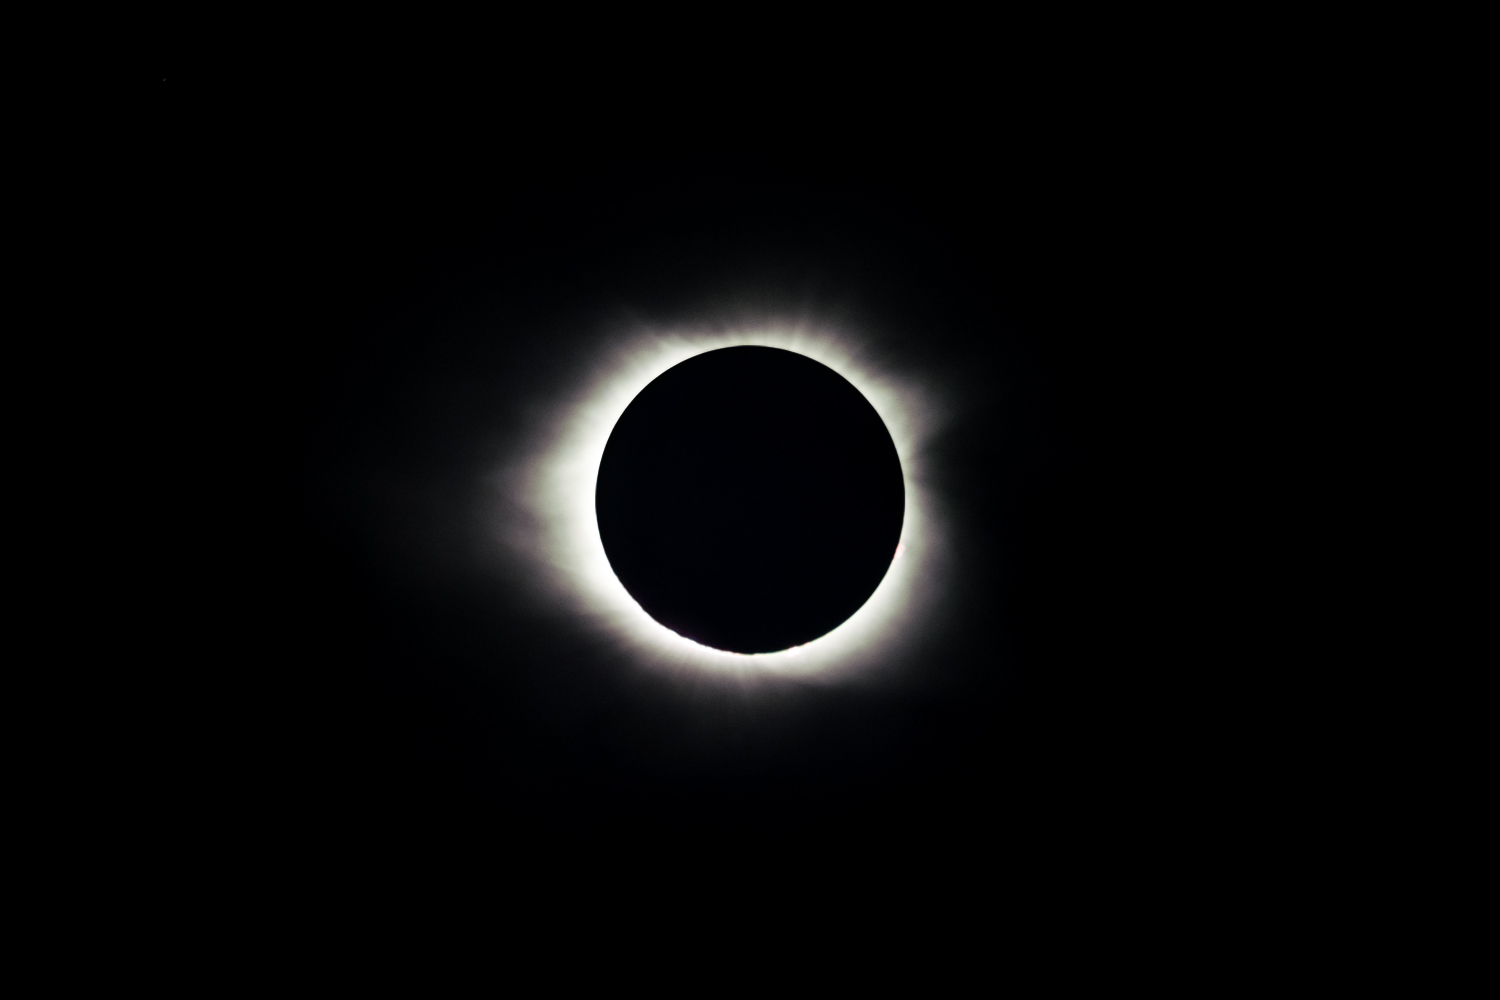 Totality from the 2017 solar eclipse.